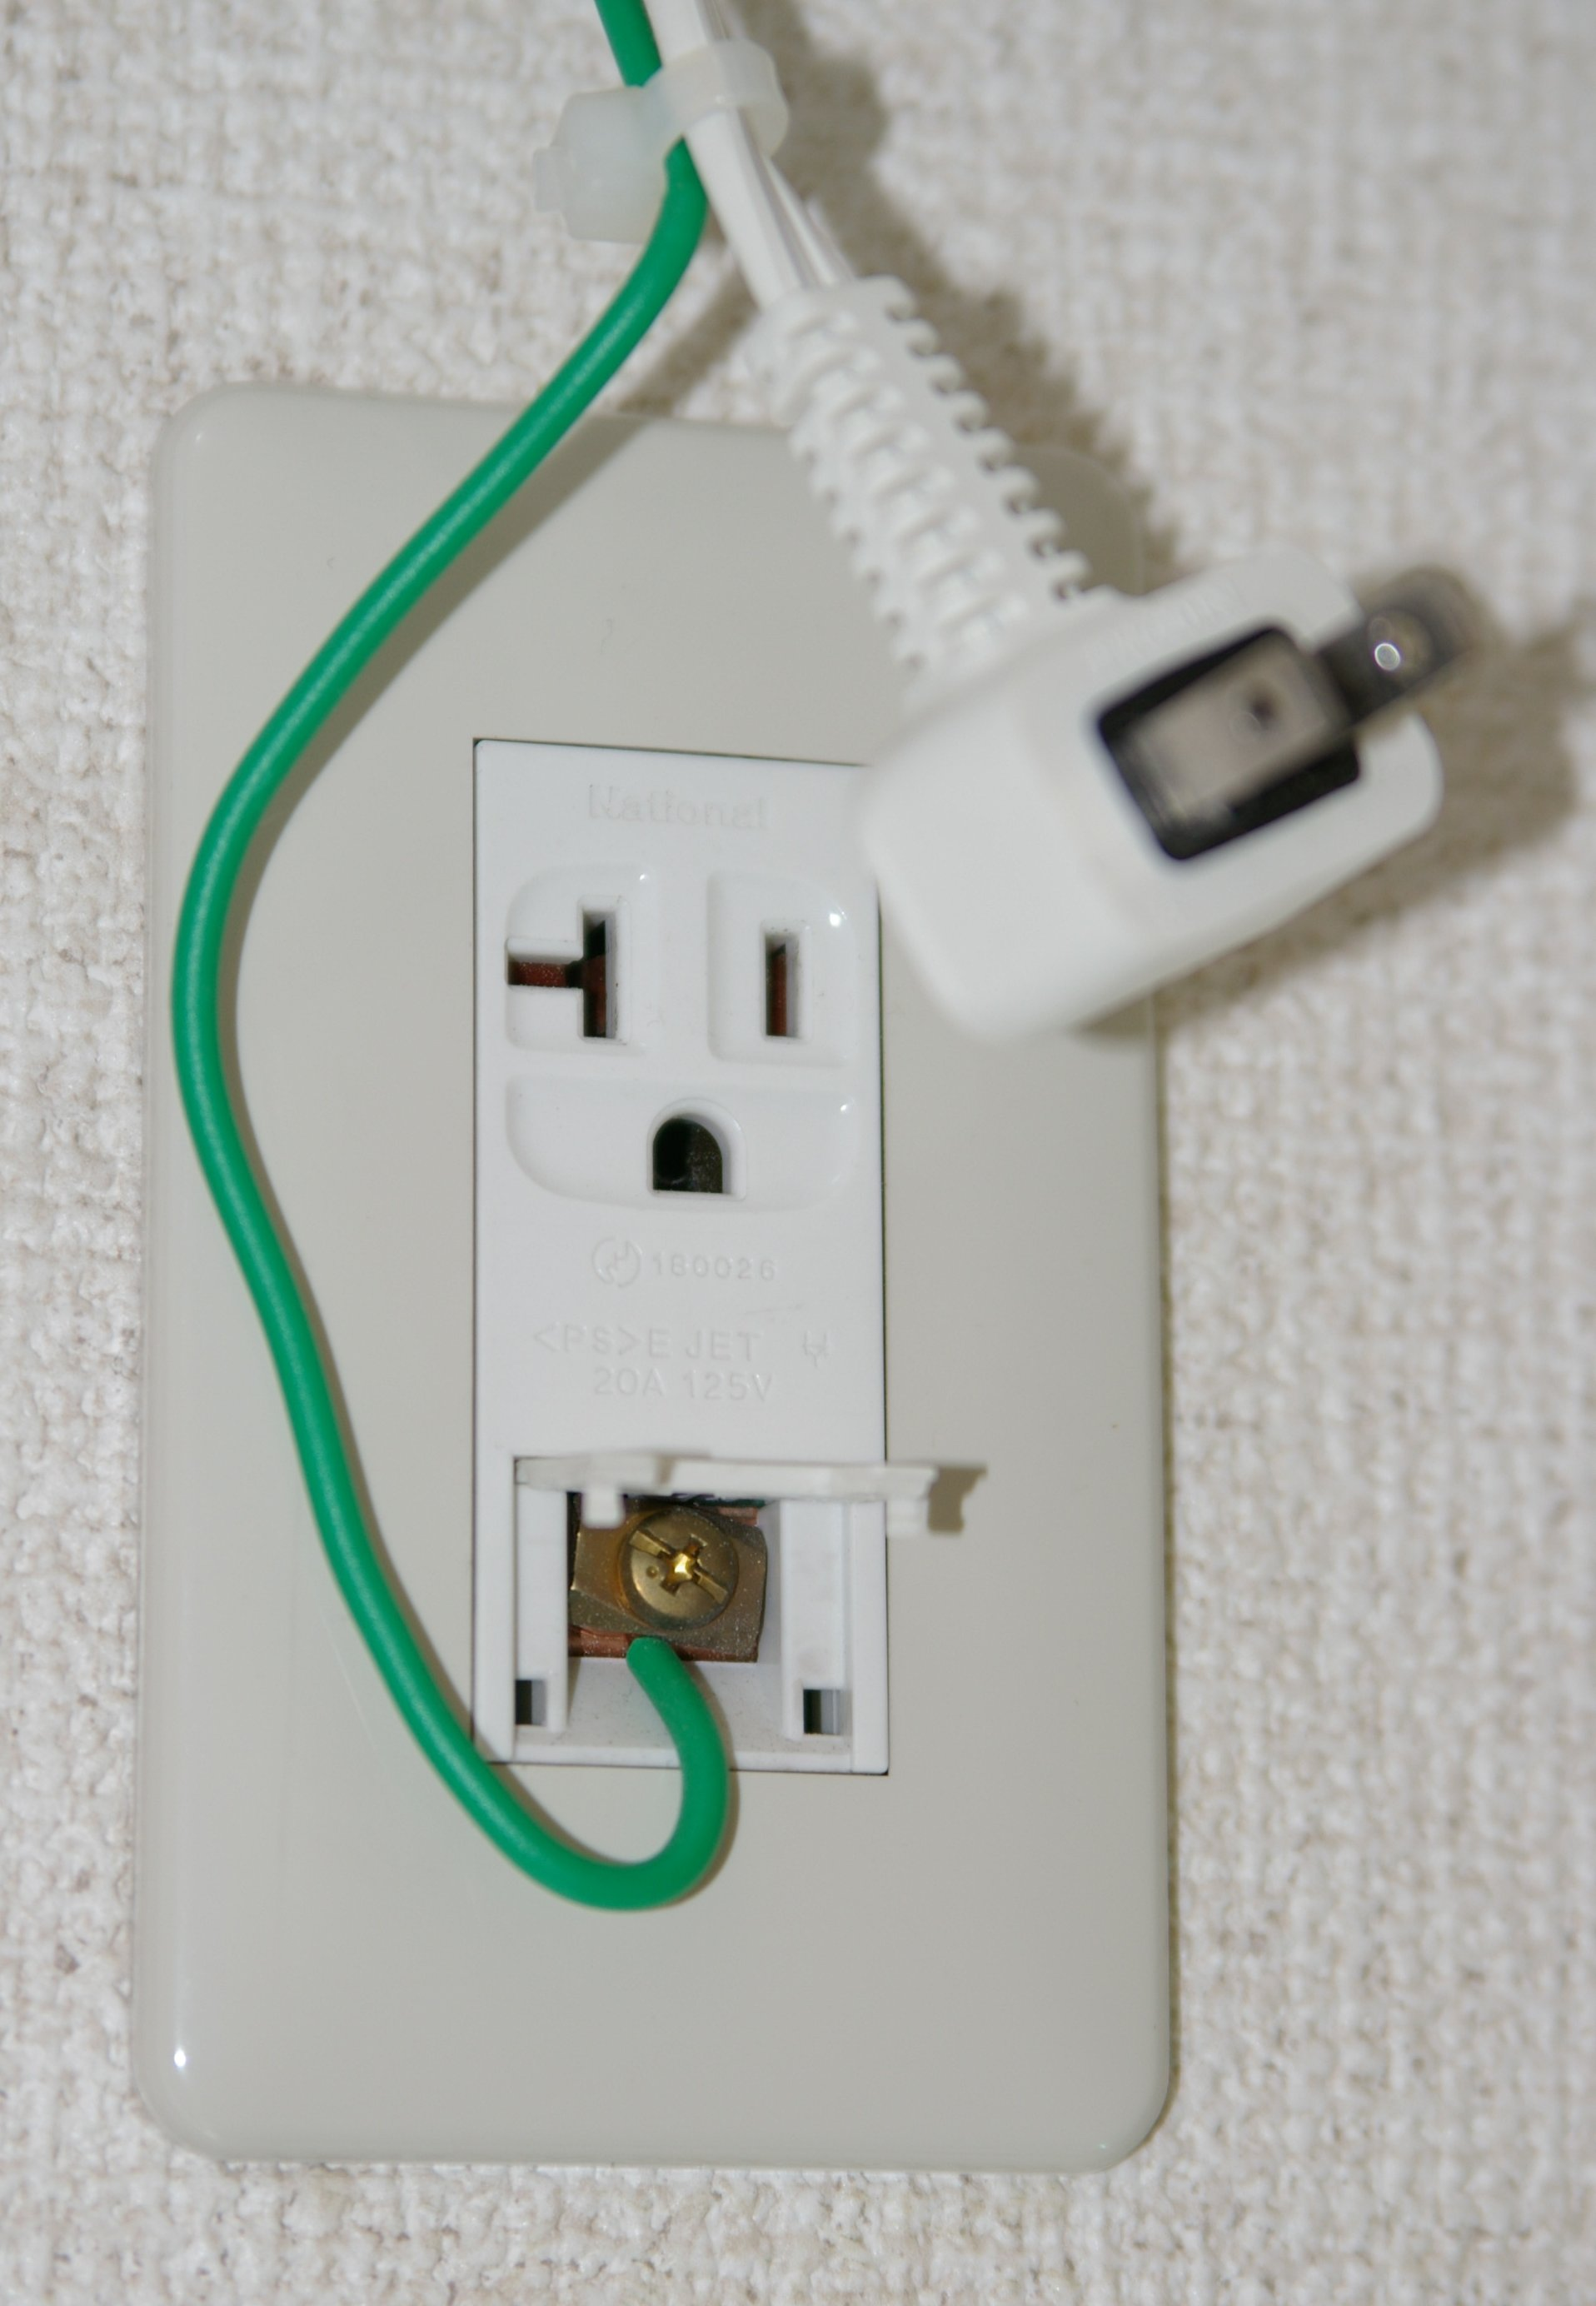 electrical japanese appliance has a green  yellow ground electrical socket wiring australia electrical socket wiring diagram uk